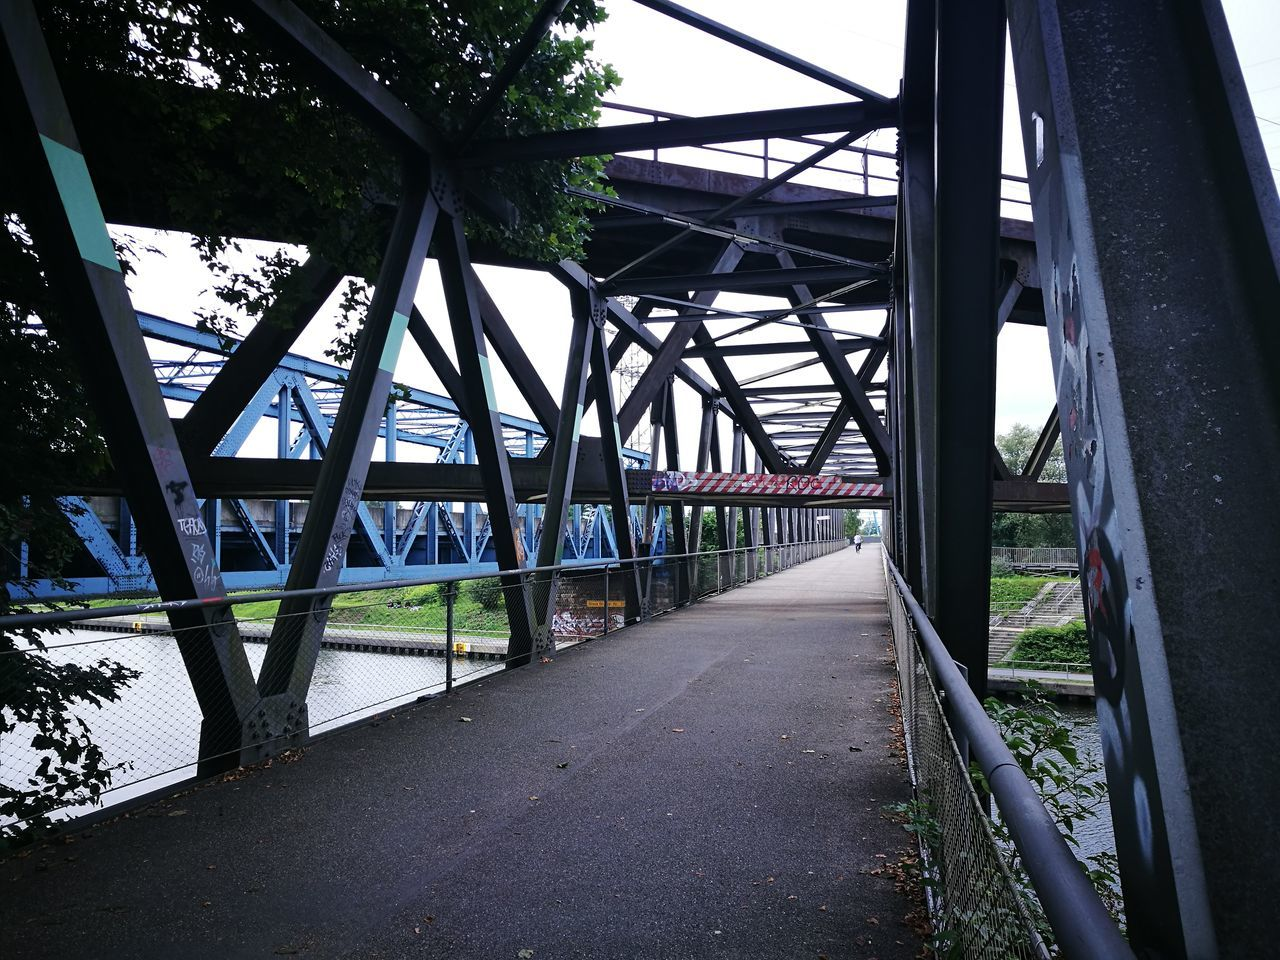 bridge - man made structure, connection, transportation, engineering, built structure, architecture, the way forward, road, day, diminishing perspective, bridge, covered bridge, metal, outdoors, railroad bridge, no people, girder, tree, footbridge, city, underneath, nature, sky